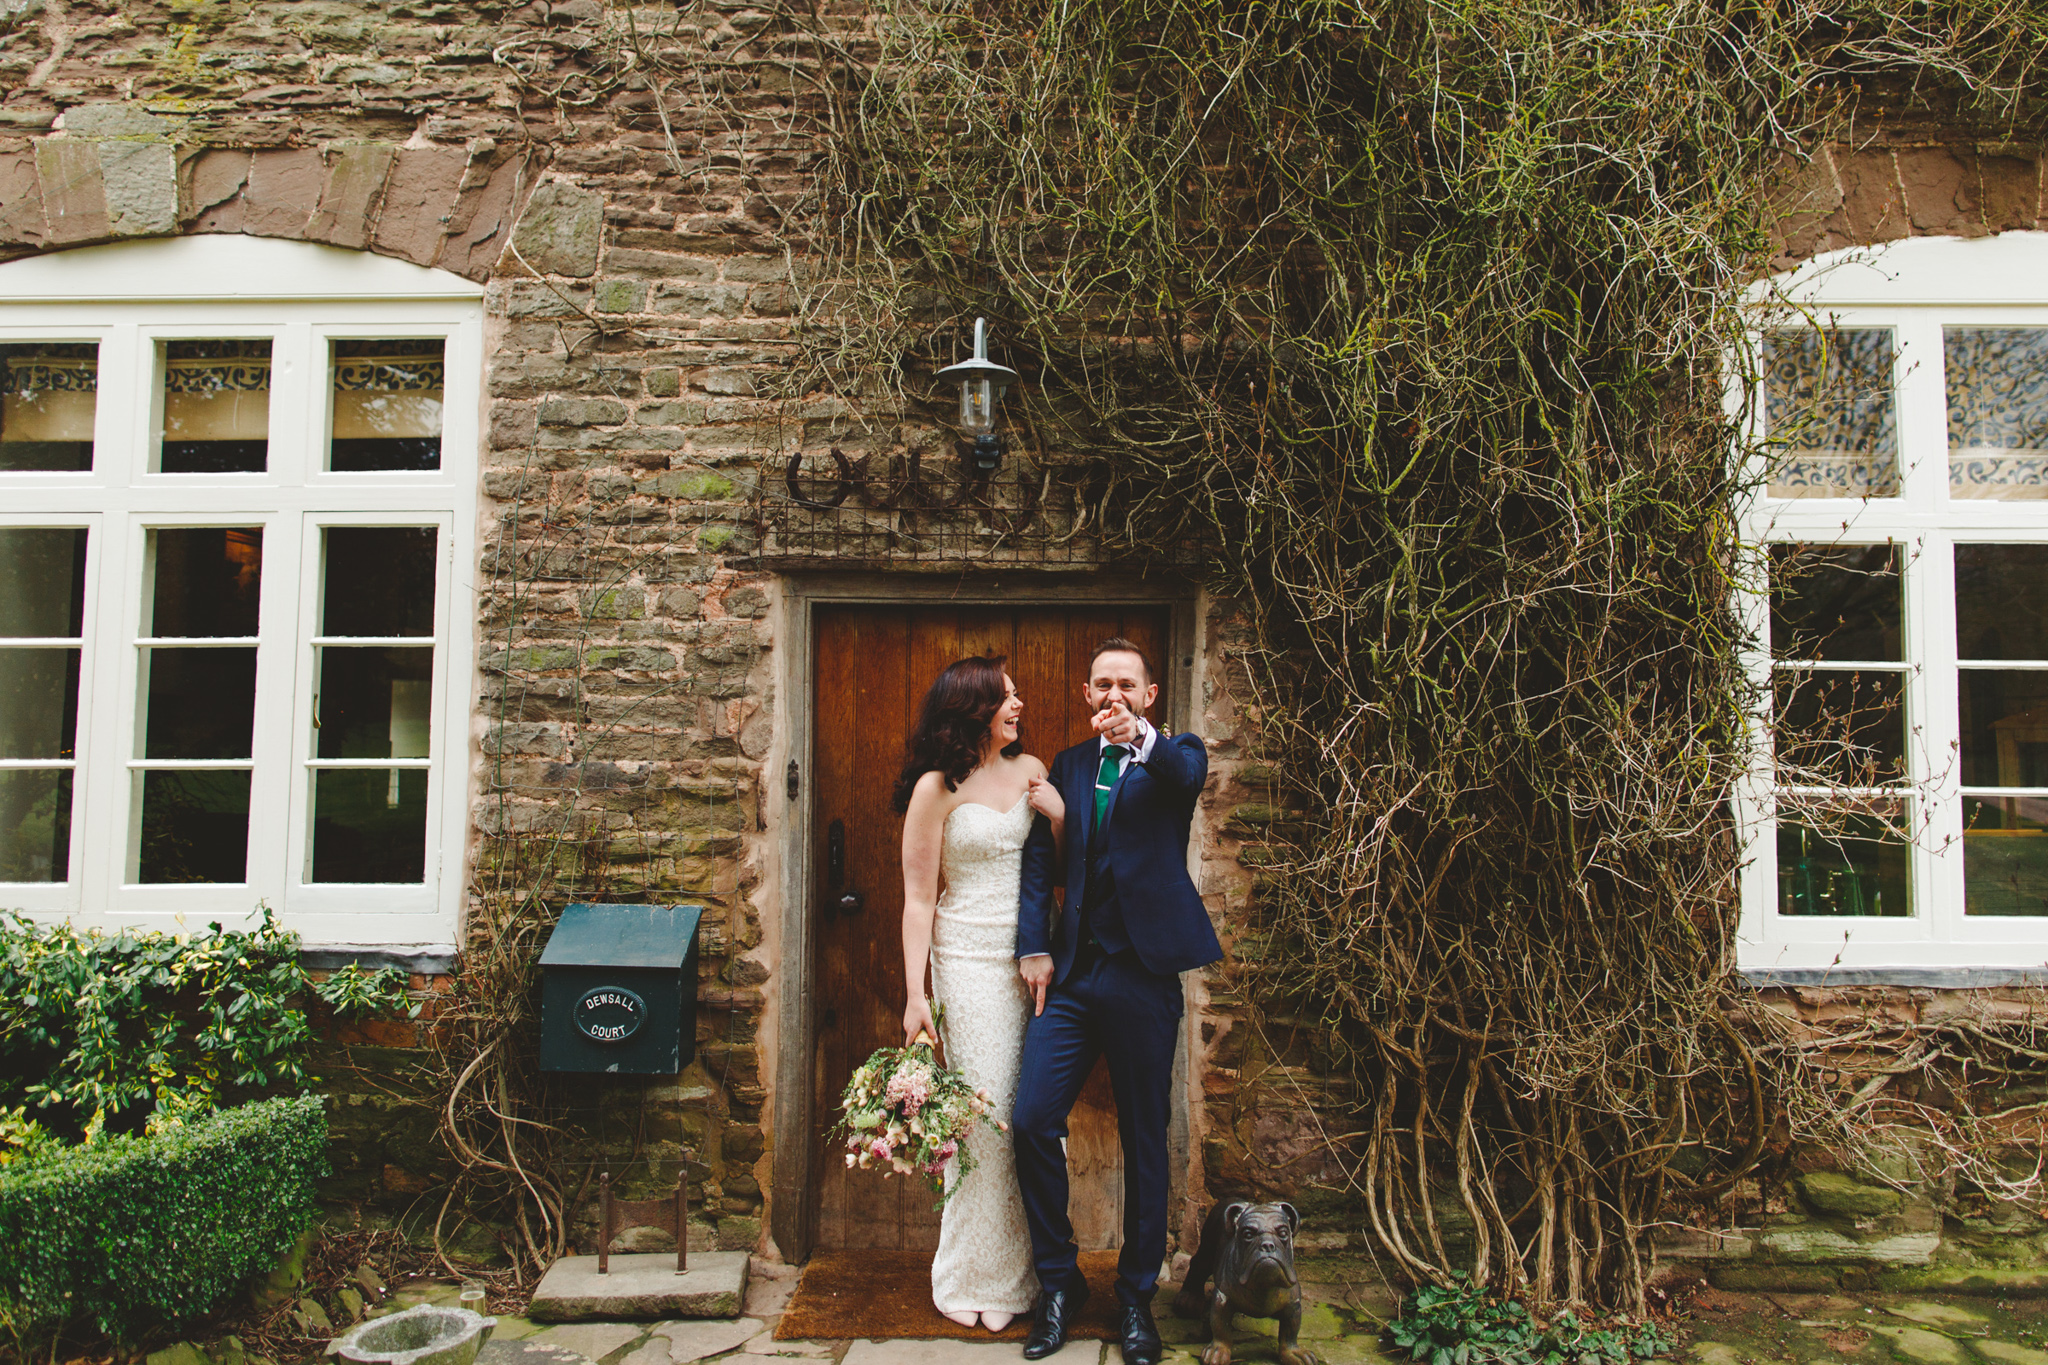 derbyshire-wedding-photographer-march-april-26.jpg